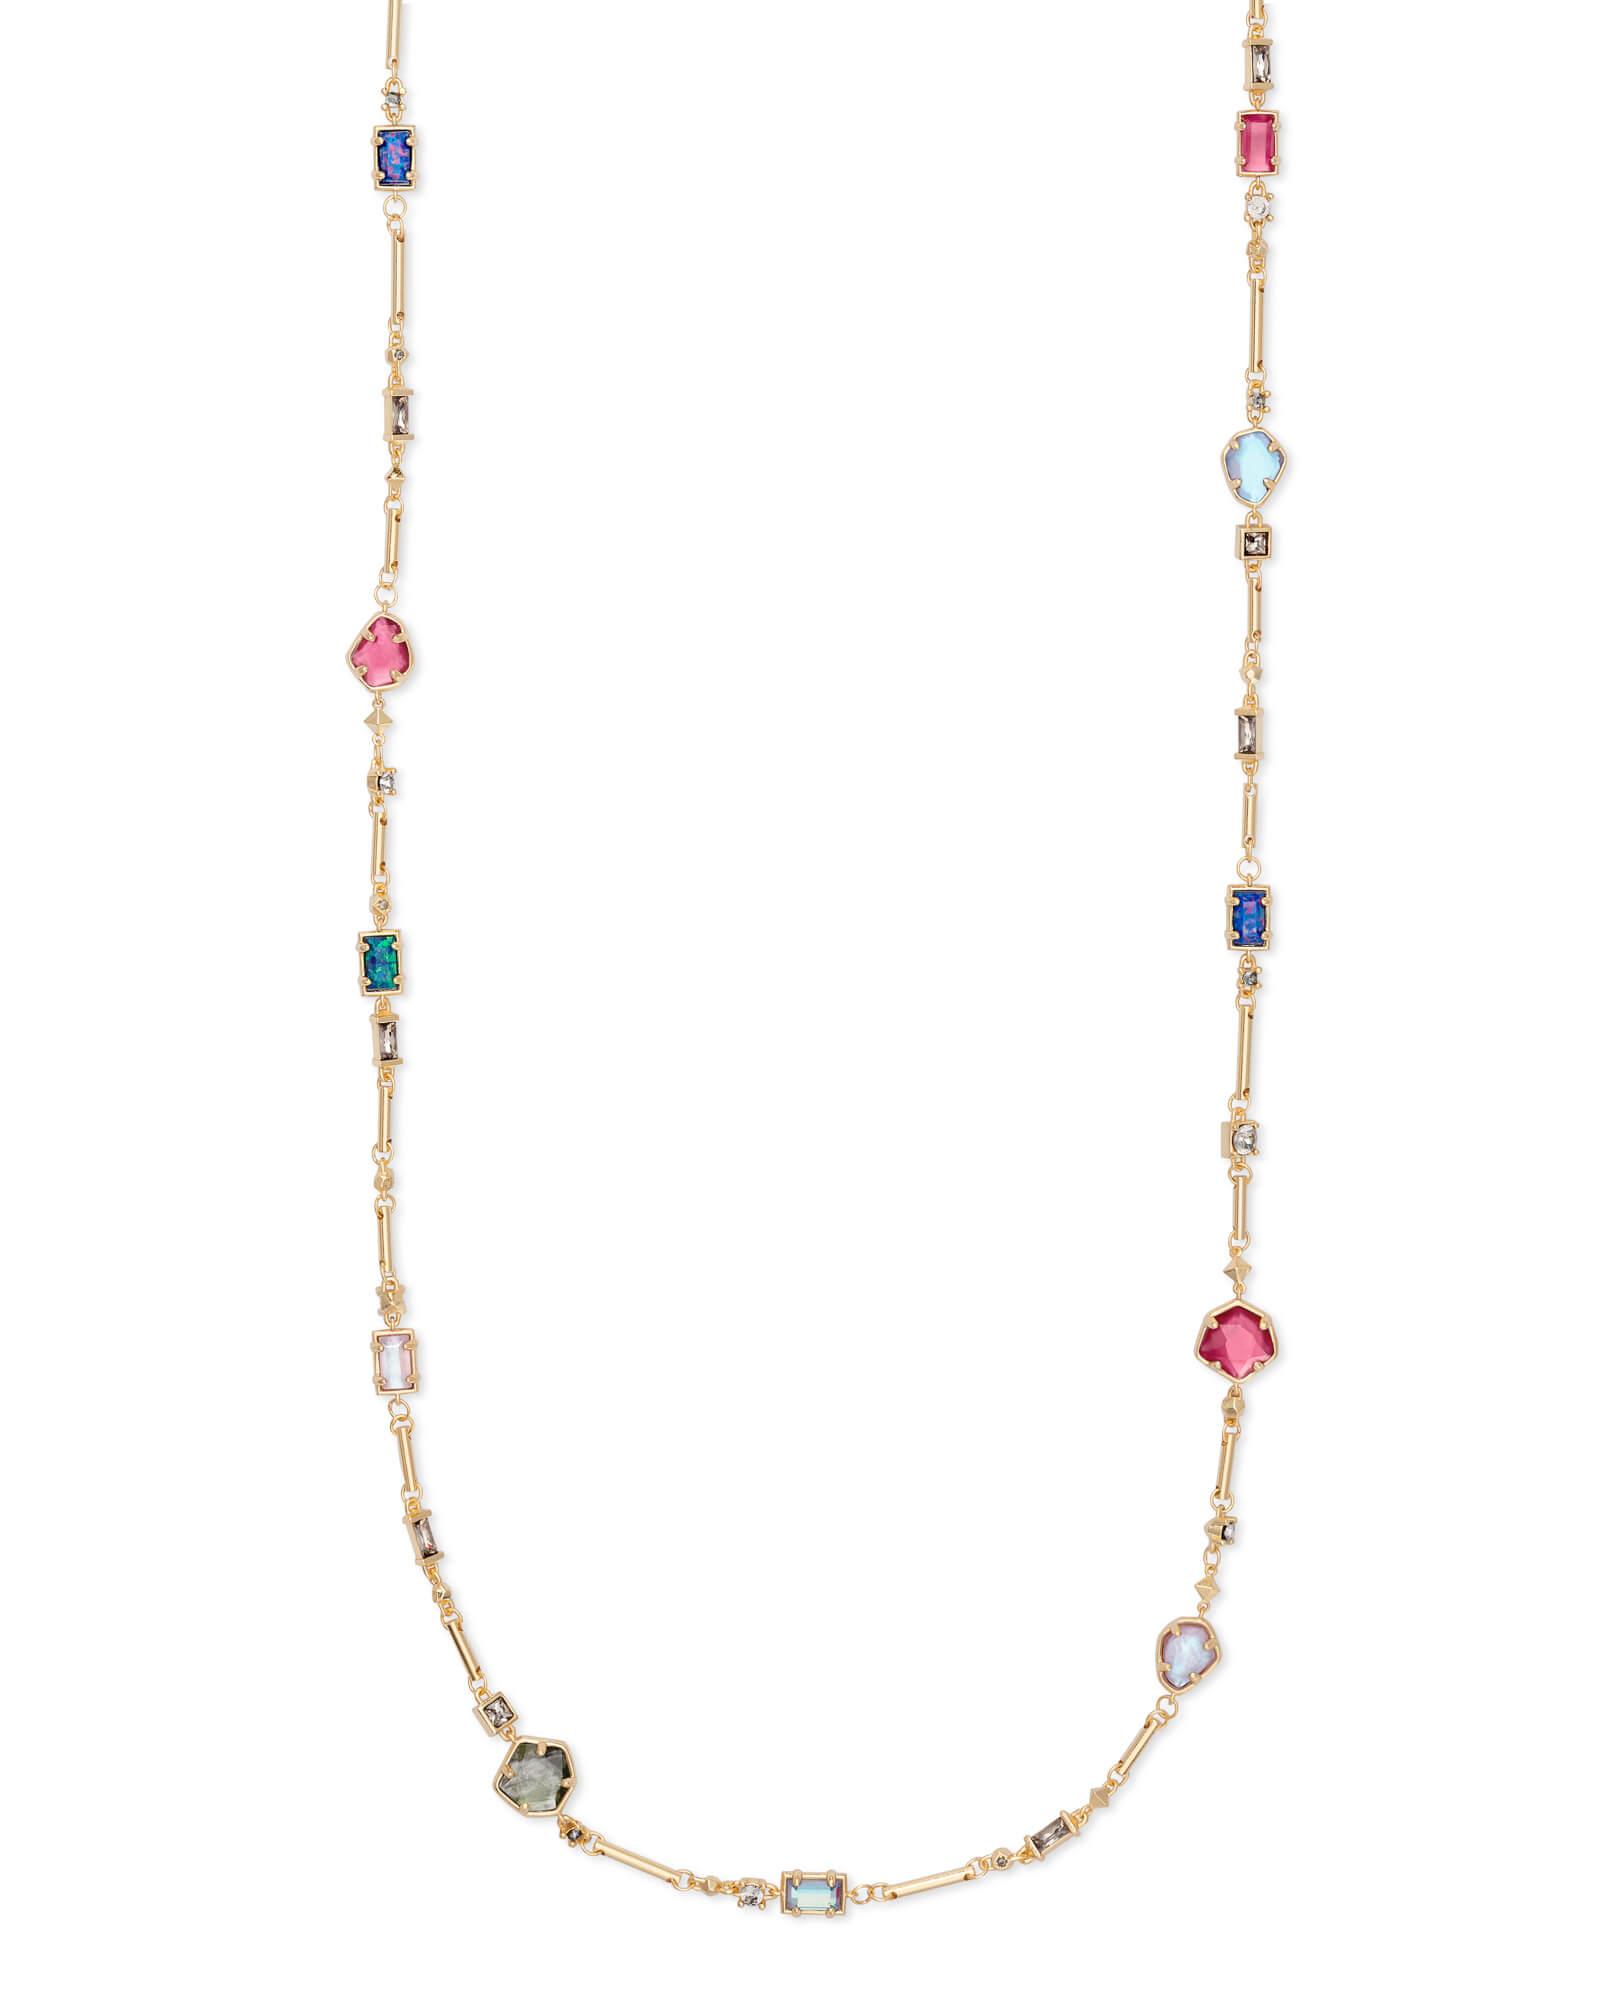 Yazmin Gold Long Necklace in Jewel Tone Mix